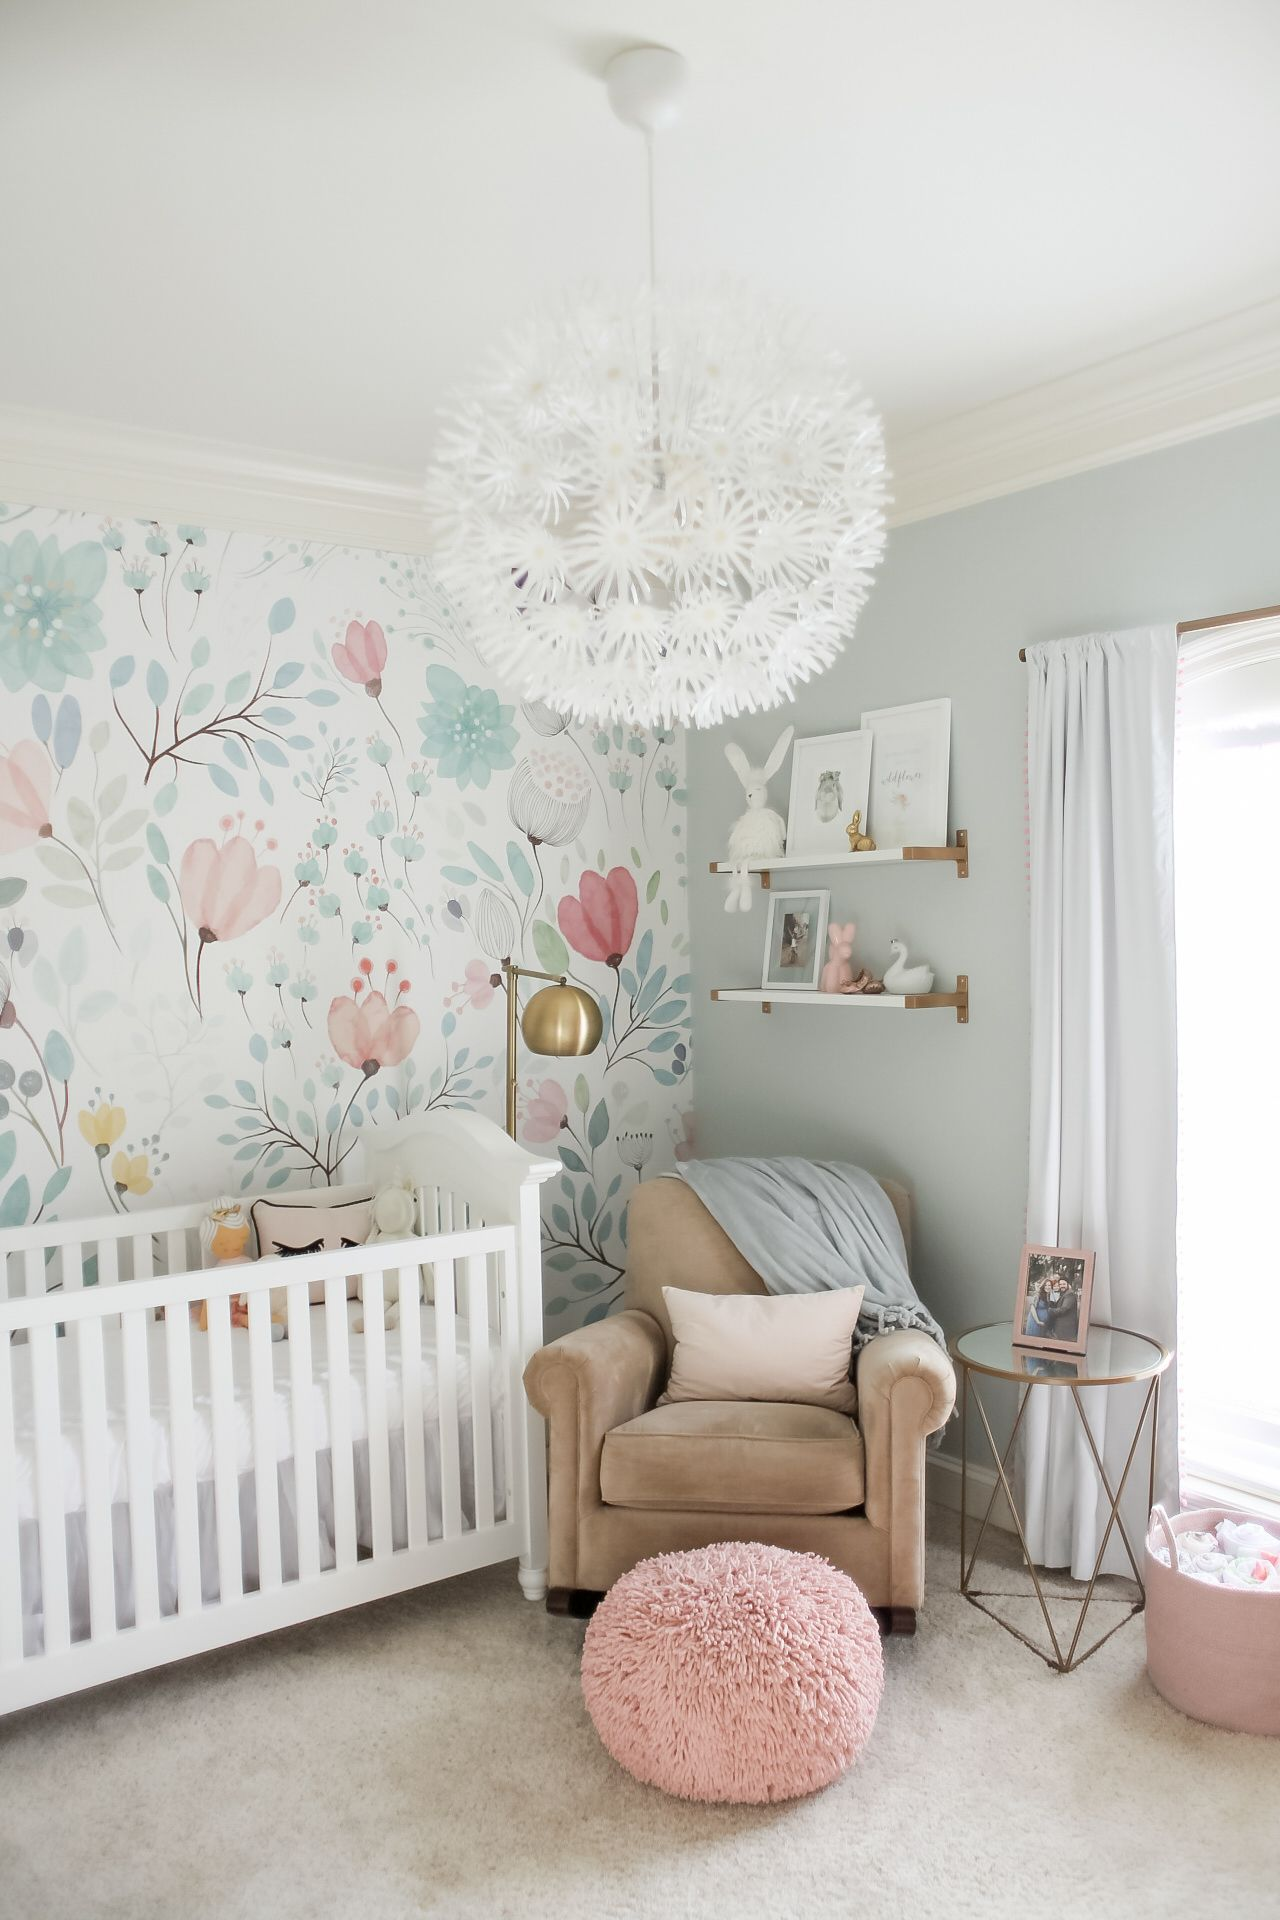 Bright and Whimsical Nursery for Colette  Nursery  Whimsical nursery Baby bedroom Kids bedroom